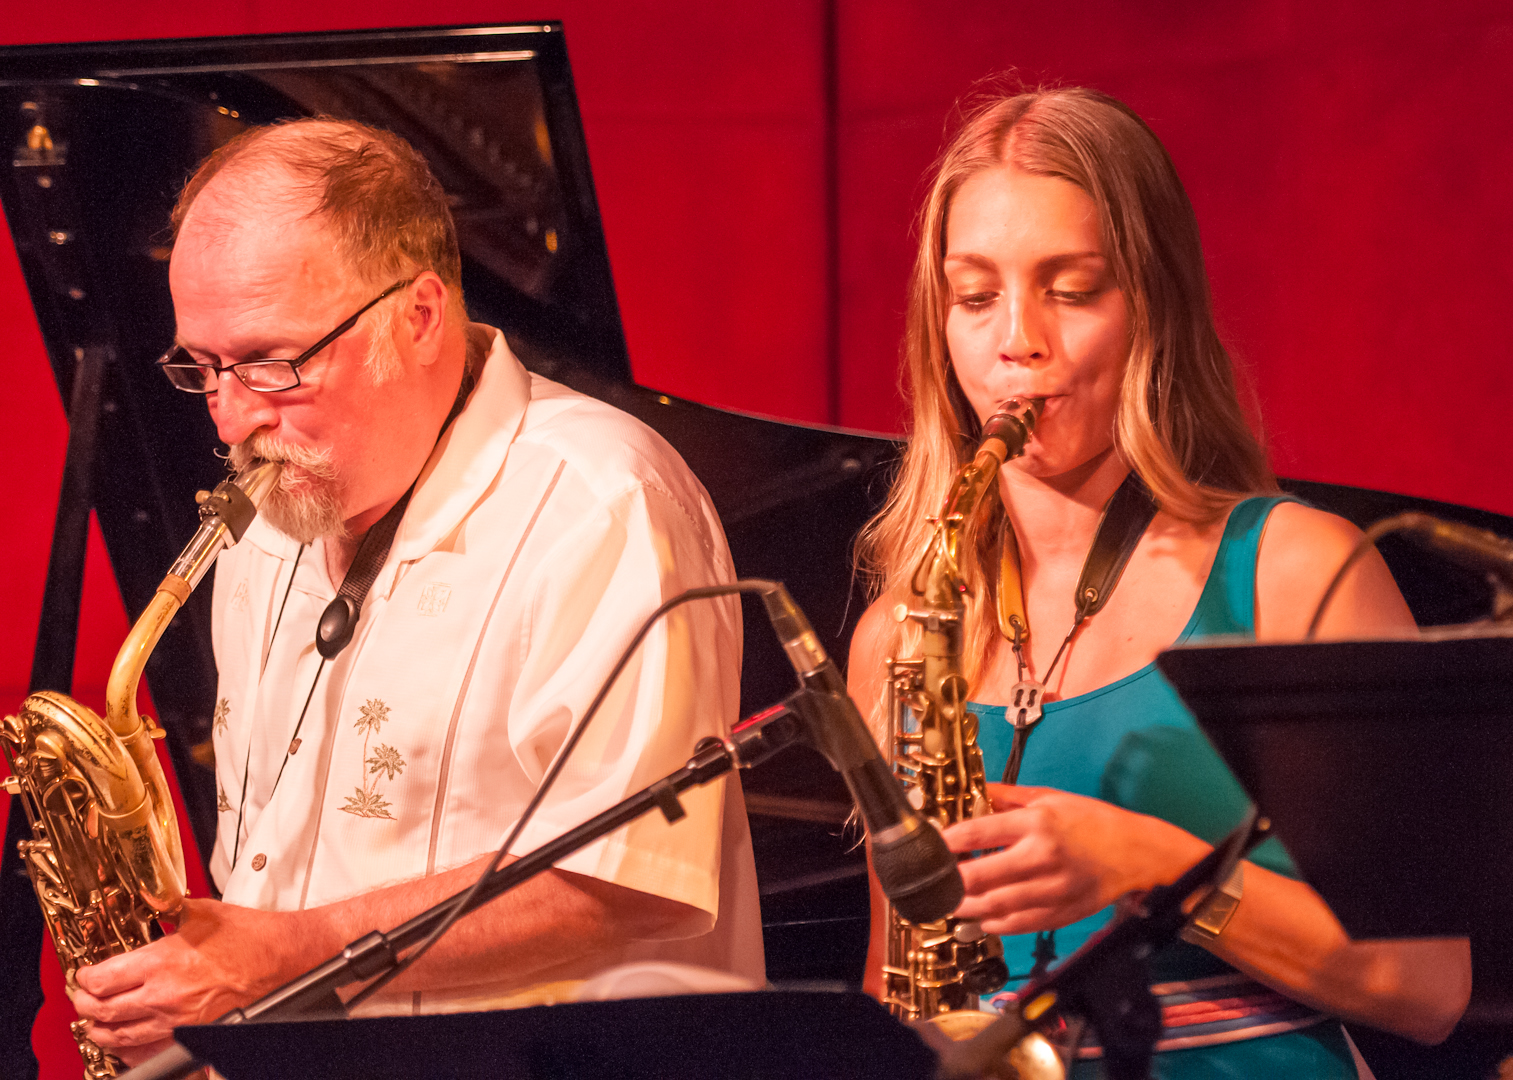 Charlie Kohlhase and Hailey Niswanger with the Either/Orchestra at the Jazz Standard